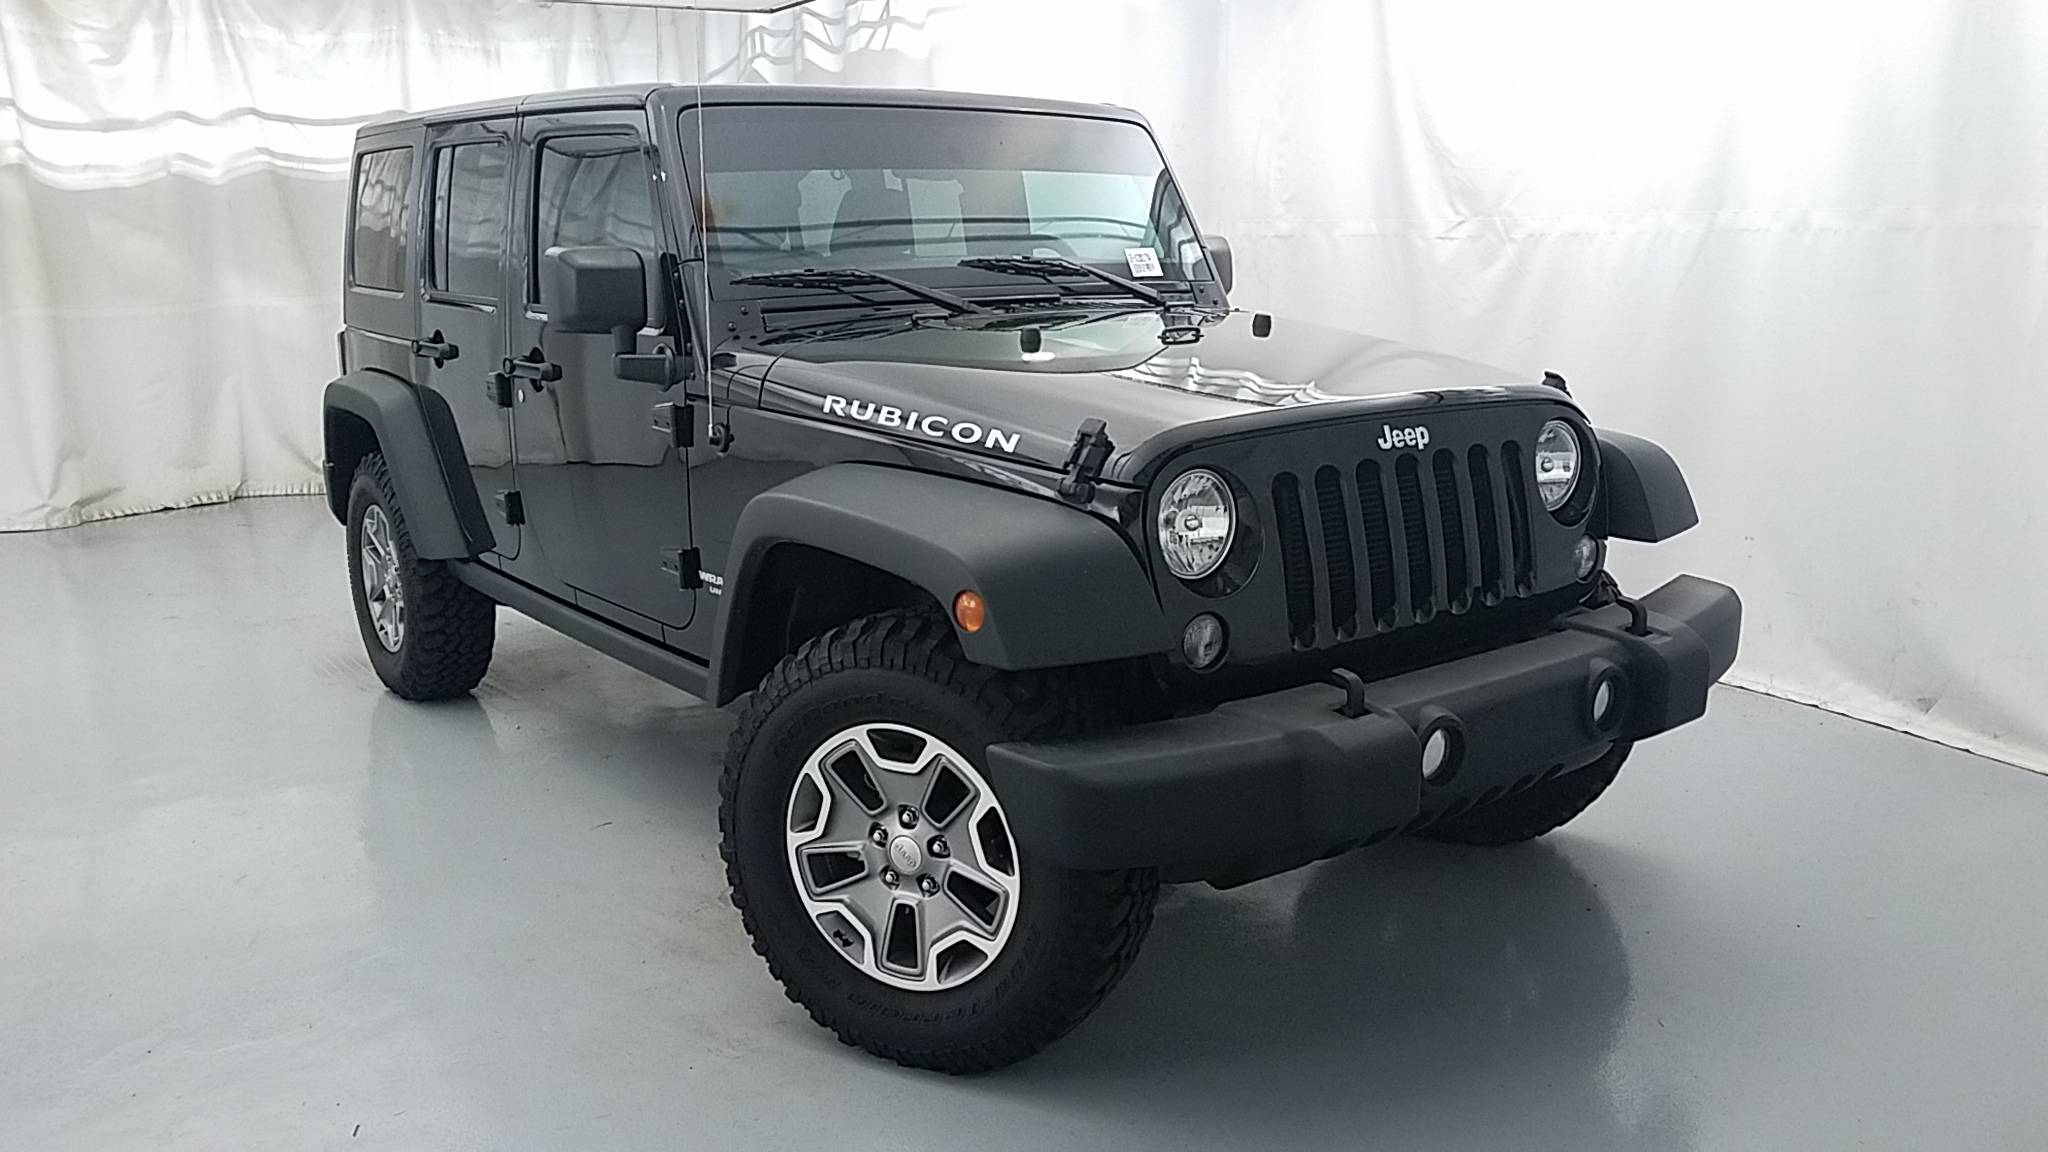 Used Jeep Vehicles for Sale near Hammond New Orleans & Baton Rouge